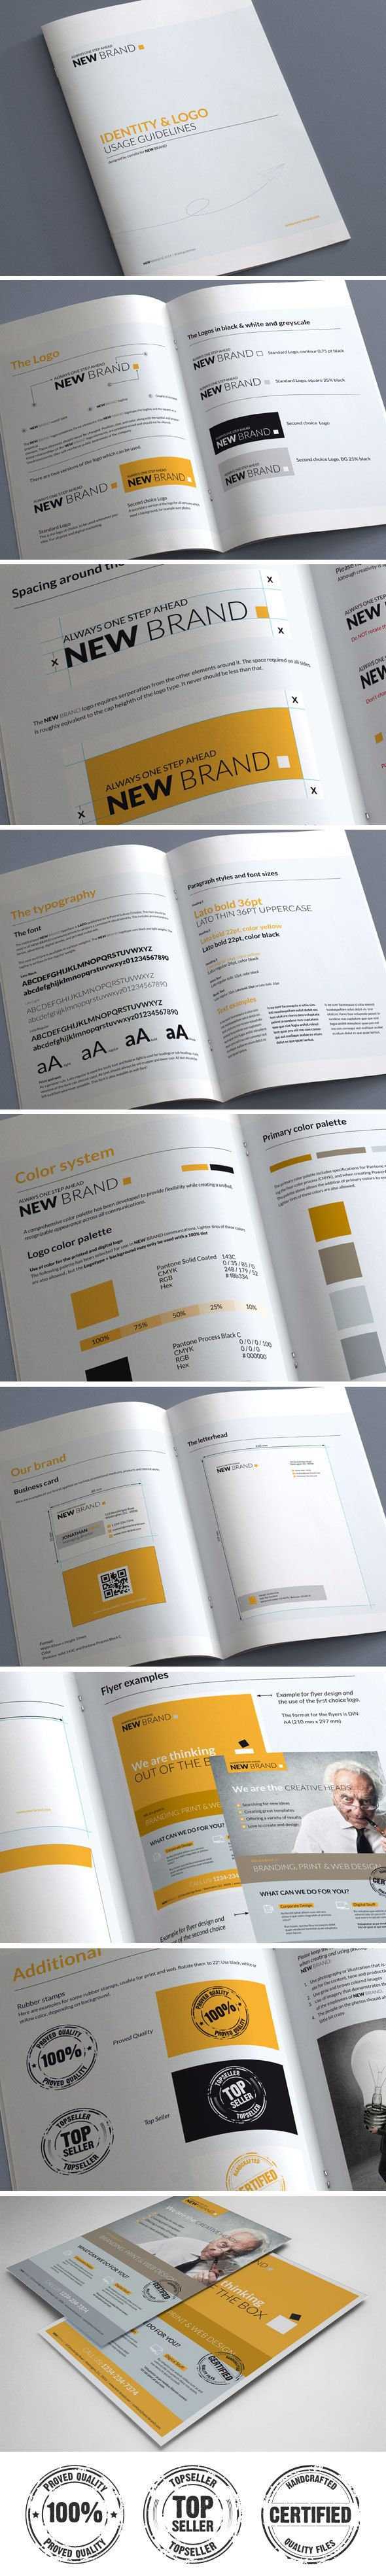 Ahhh it's so beautiful! Brand Guidelines by Andrea Maisenbacher, via Behance